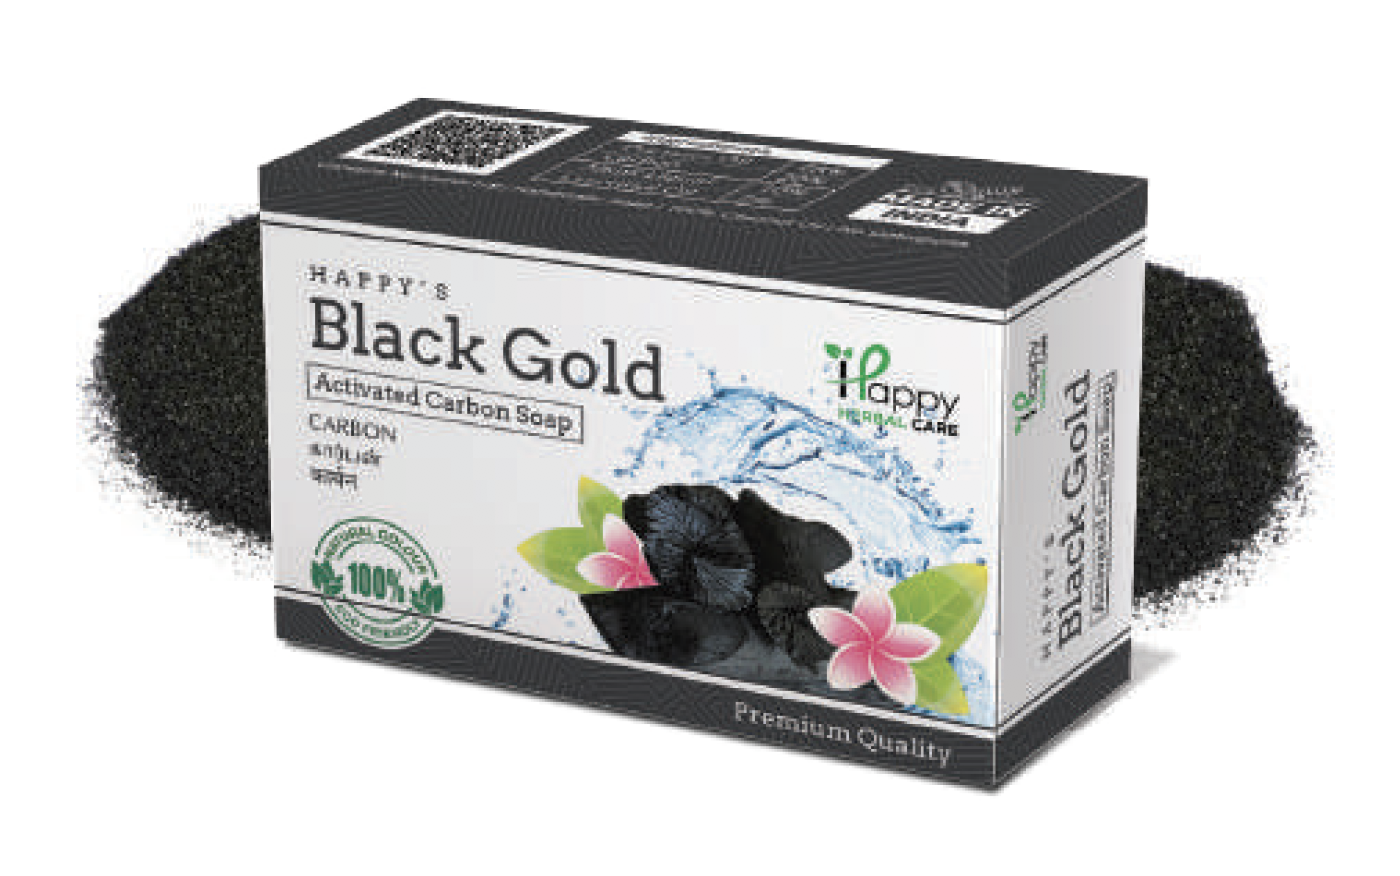 activated carbon soap